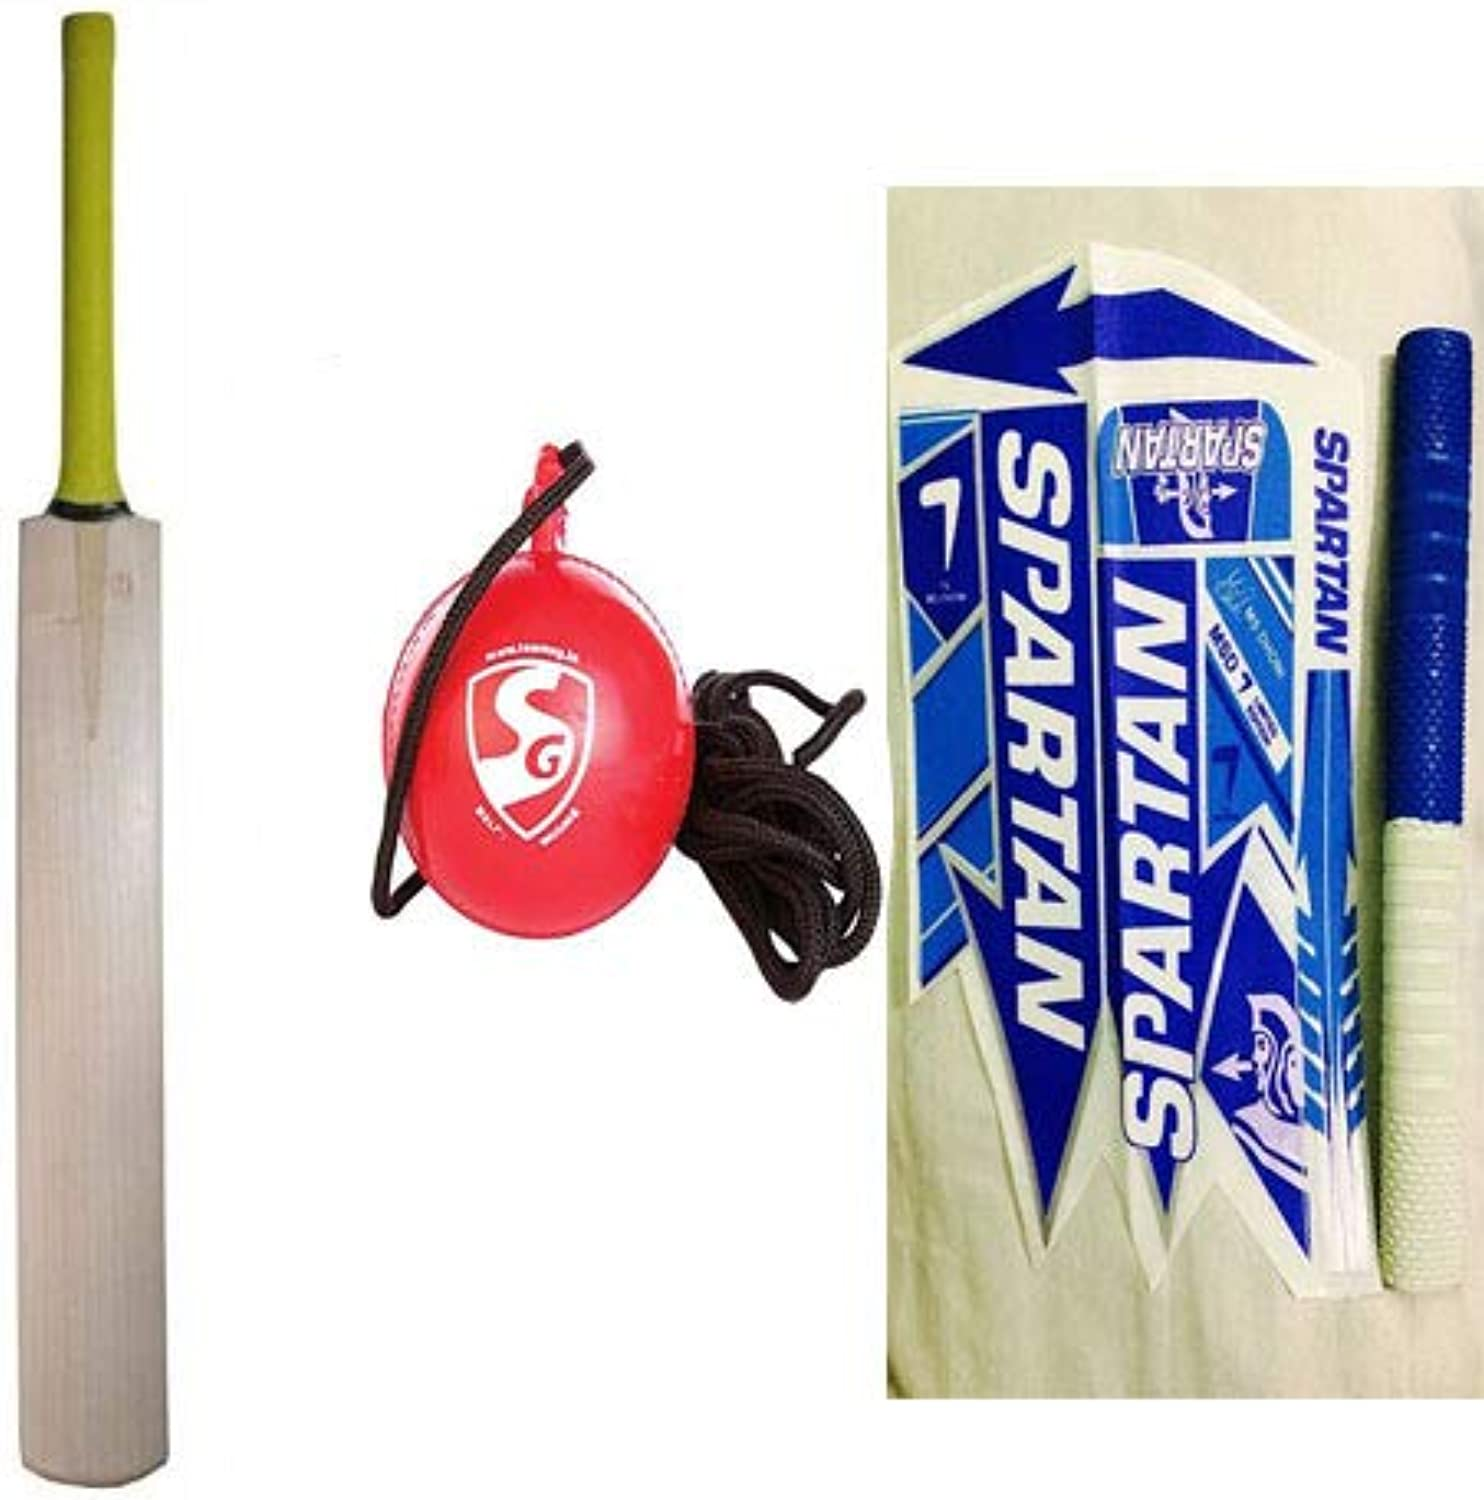 WW Plain Kashmir Willow Bat Grade with SG iball with Cord, Adult and Free Spartan MSD 7 Bat Sticker with Grip